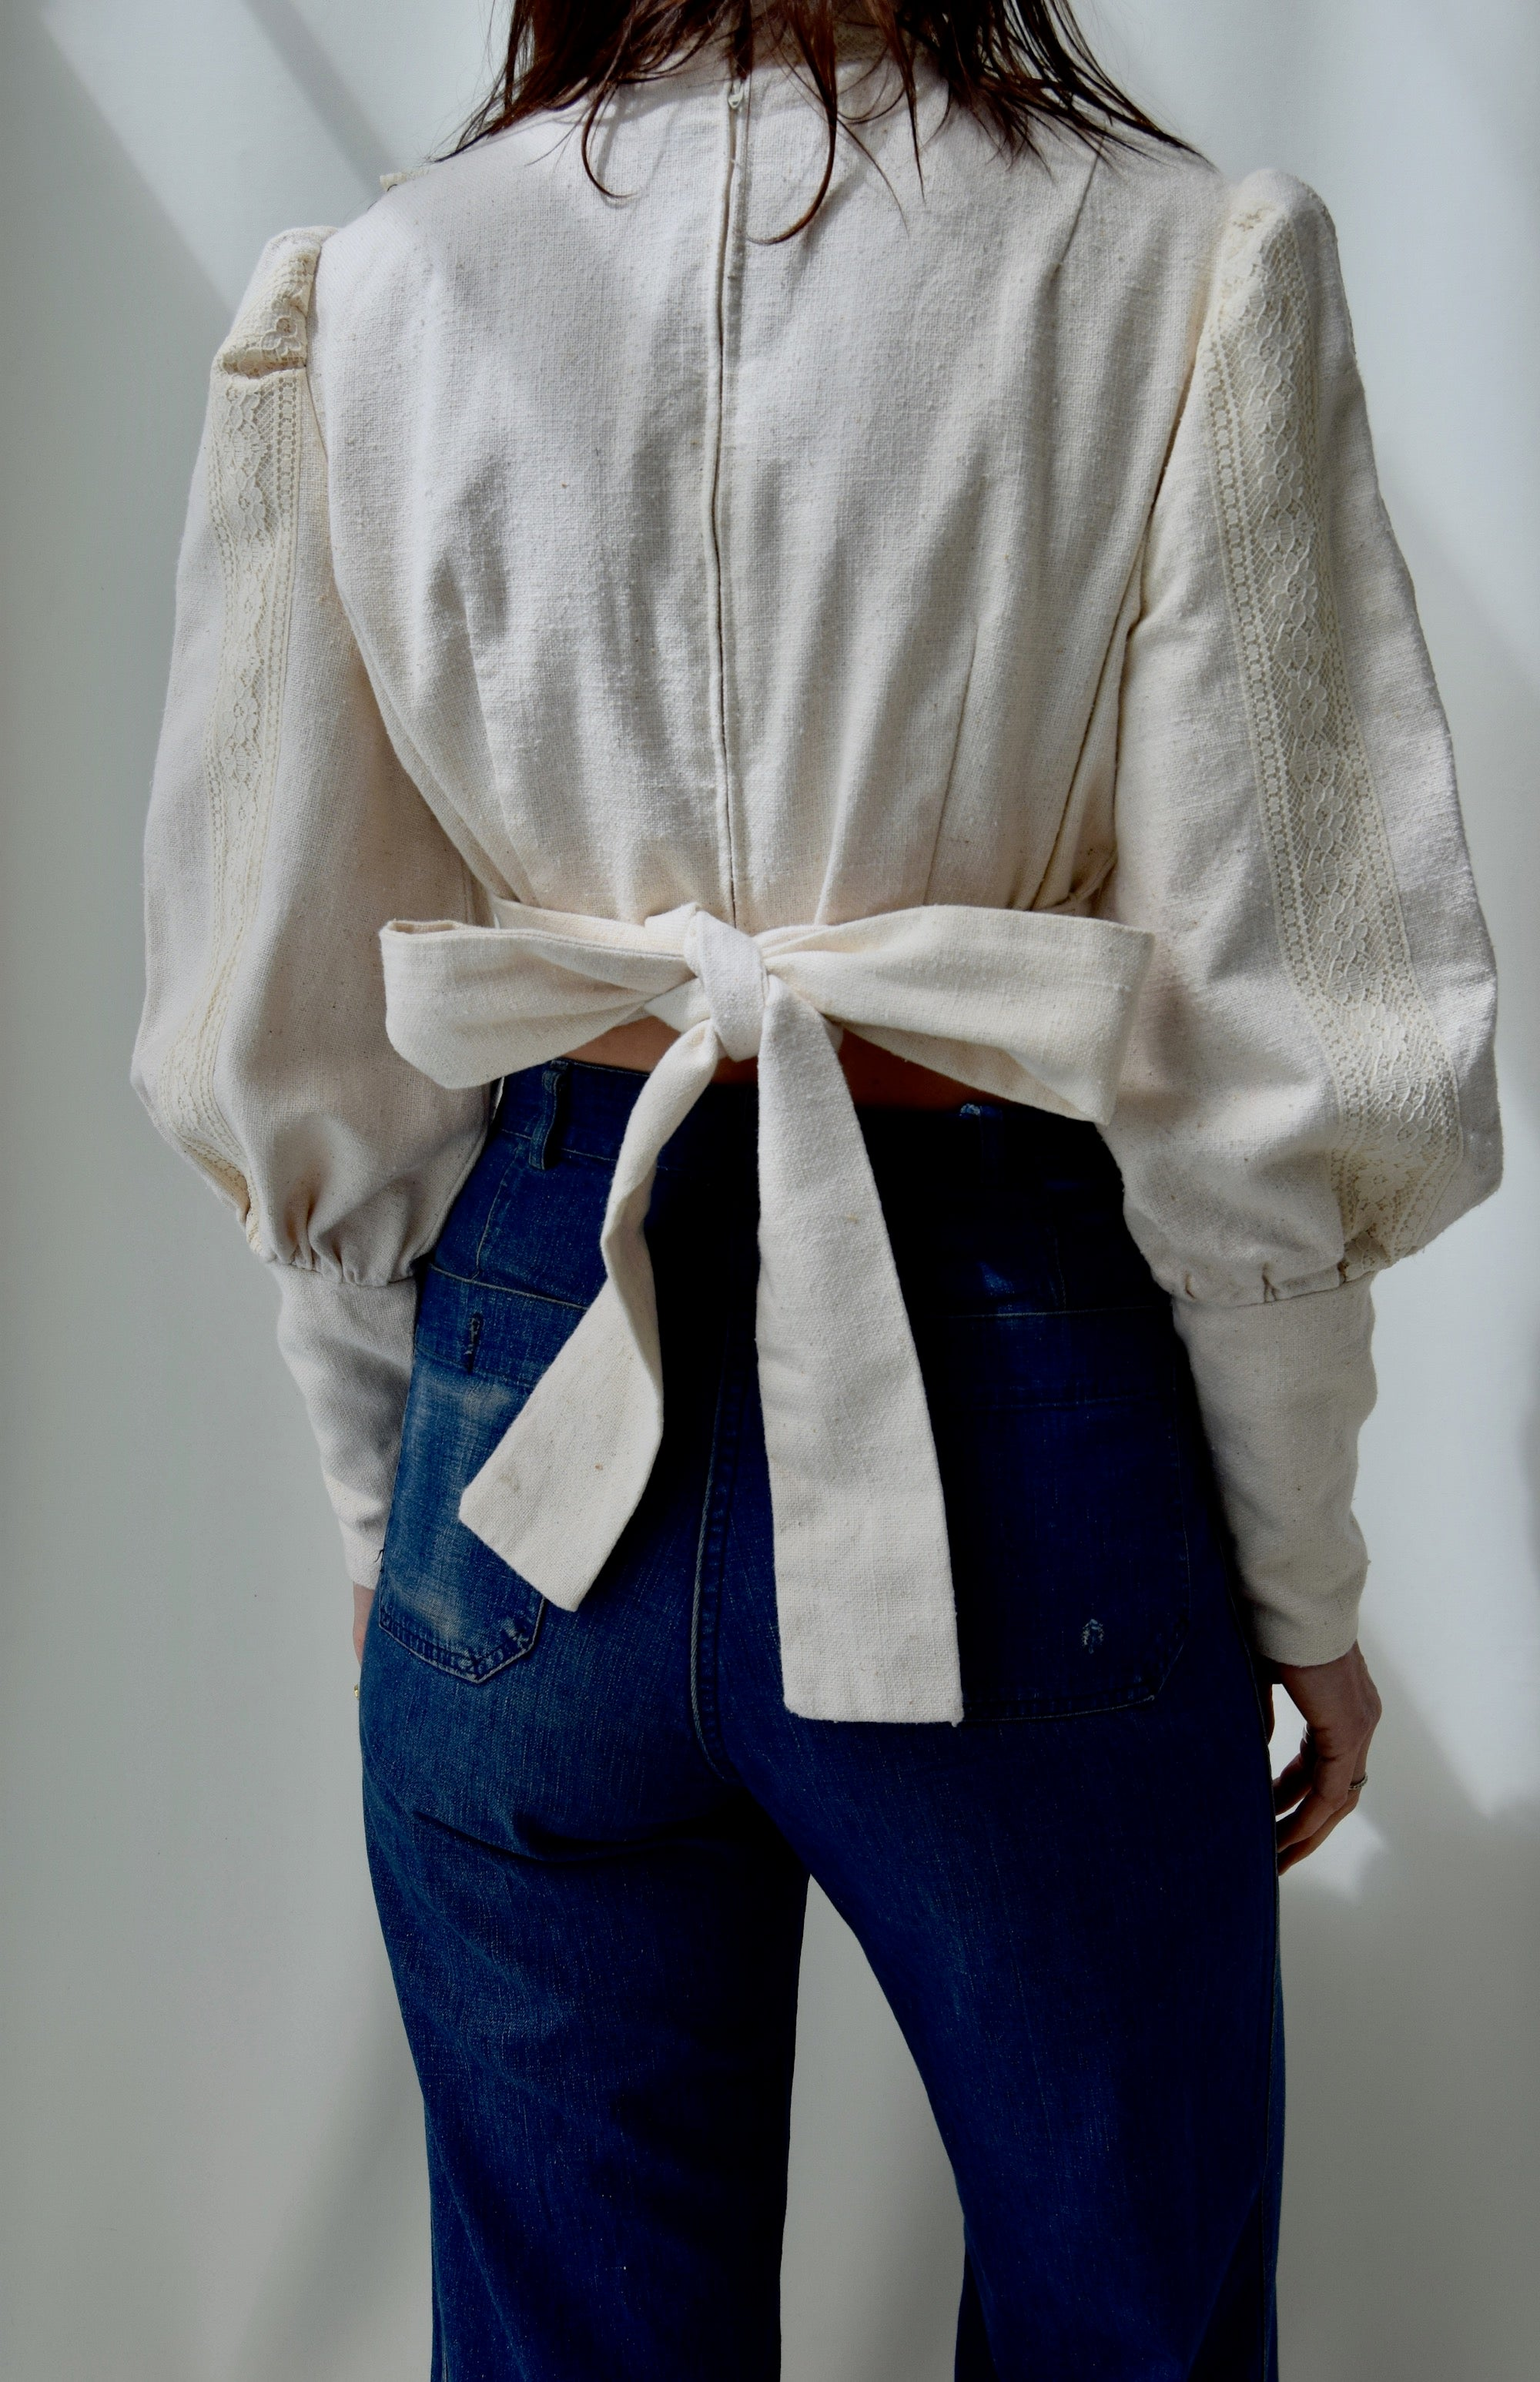 1970's Mutton Sleeve Cropped Blouse